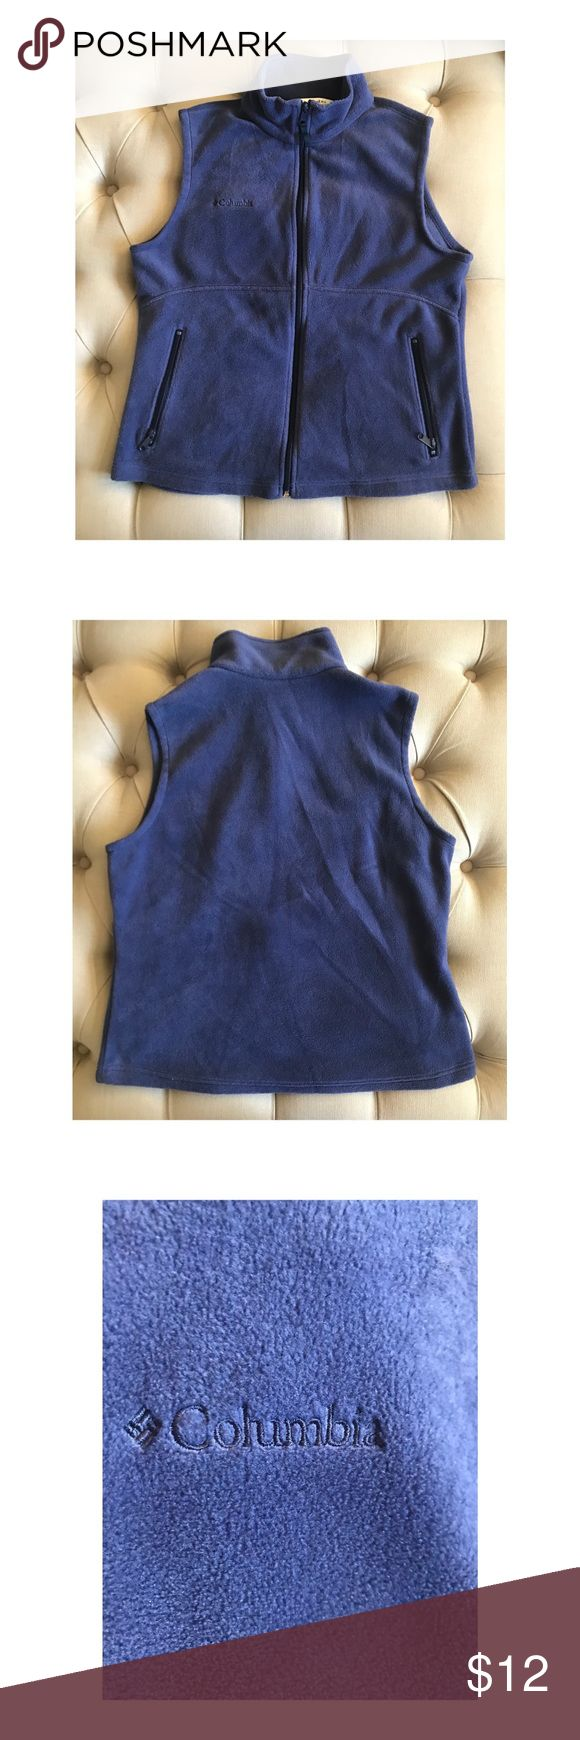 ❄️ Women's Columbia Blue Fleece Zip Up Vest ❄️ Used but in very good condition. Size Large. It's a shade of blue; I believe it's called nocturnal. Comes from pet/smoke free home. Prefect for Fall/Winter. Columbia Jackets & Coats Vests